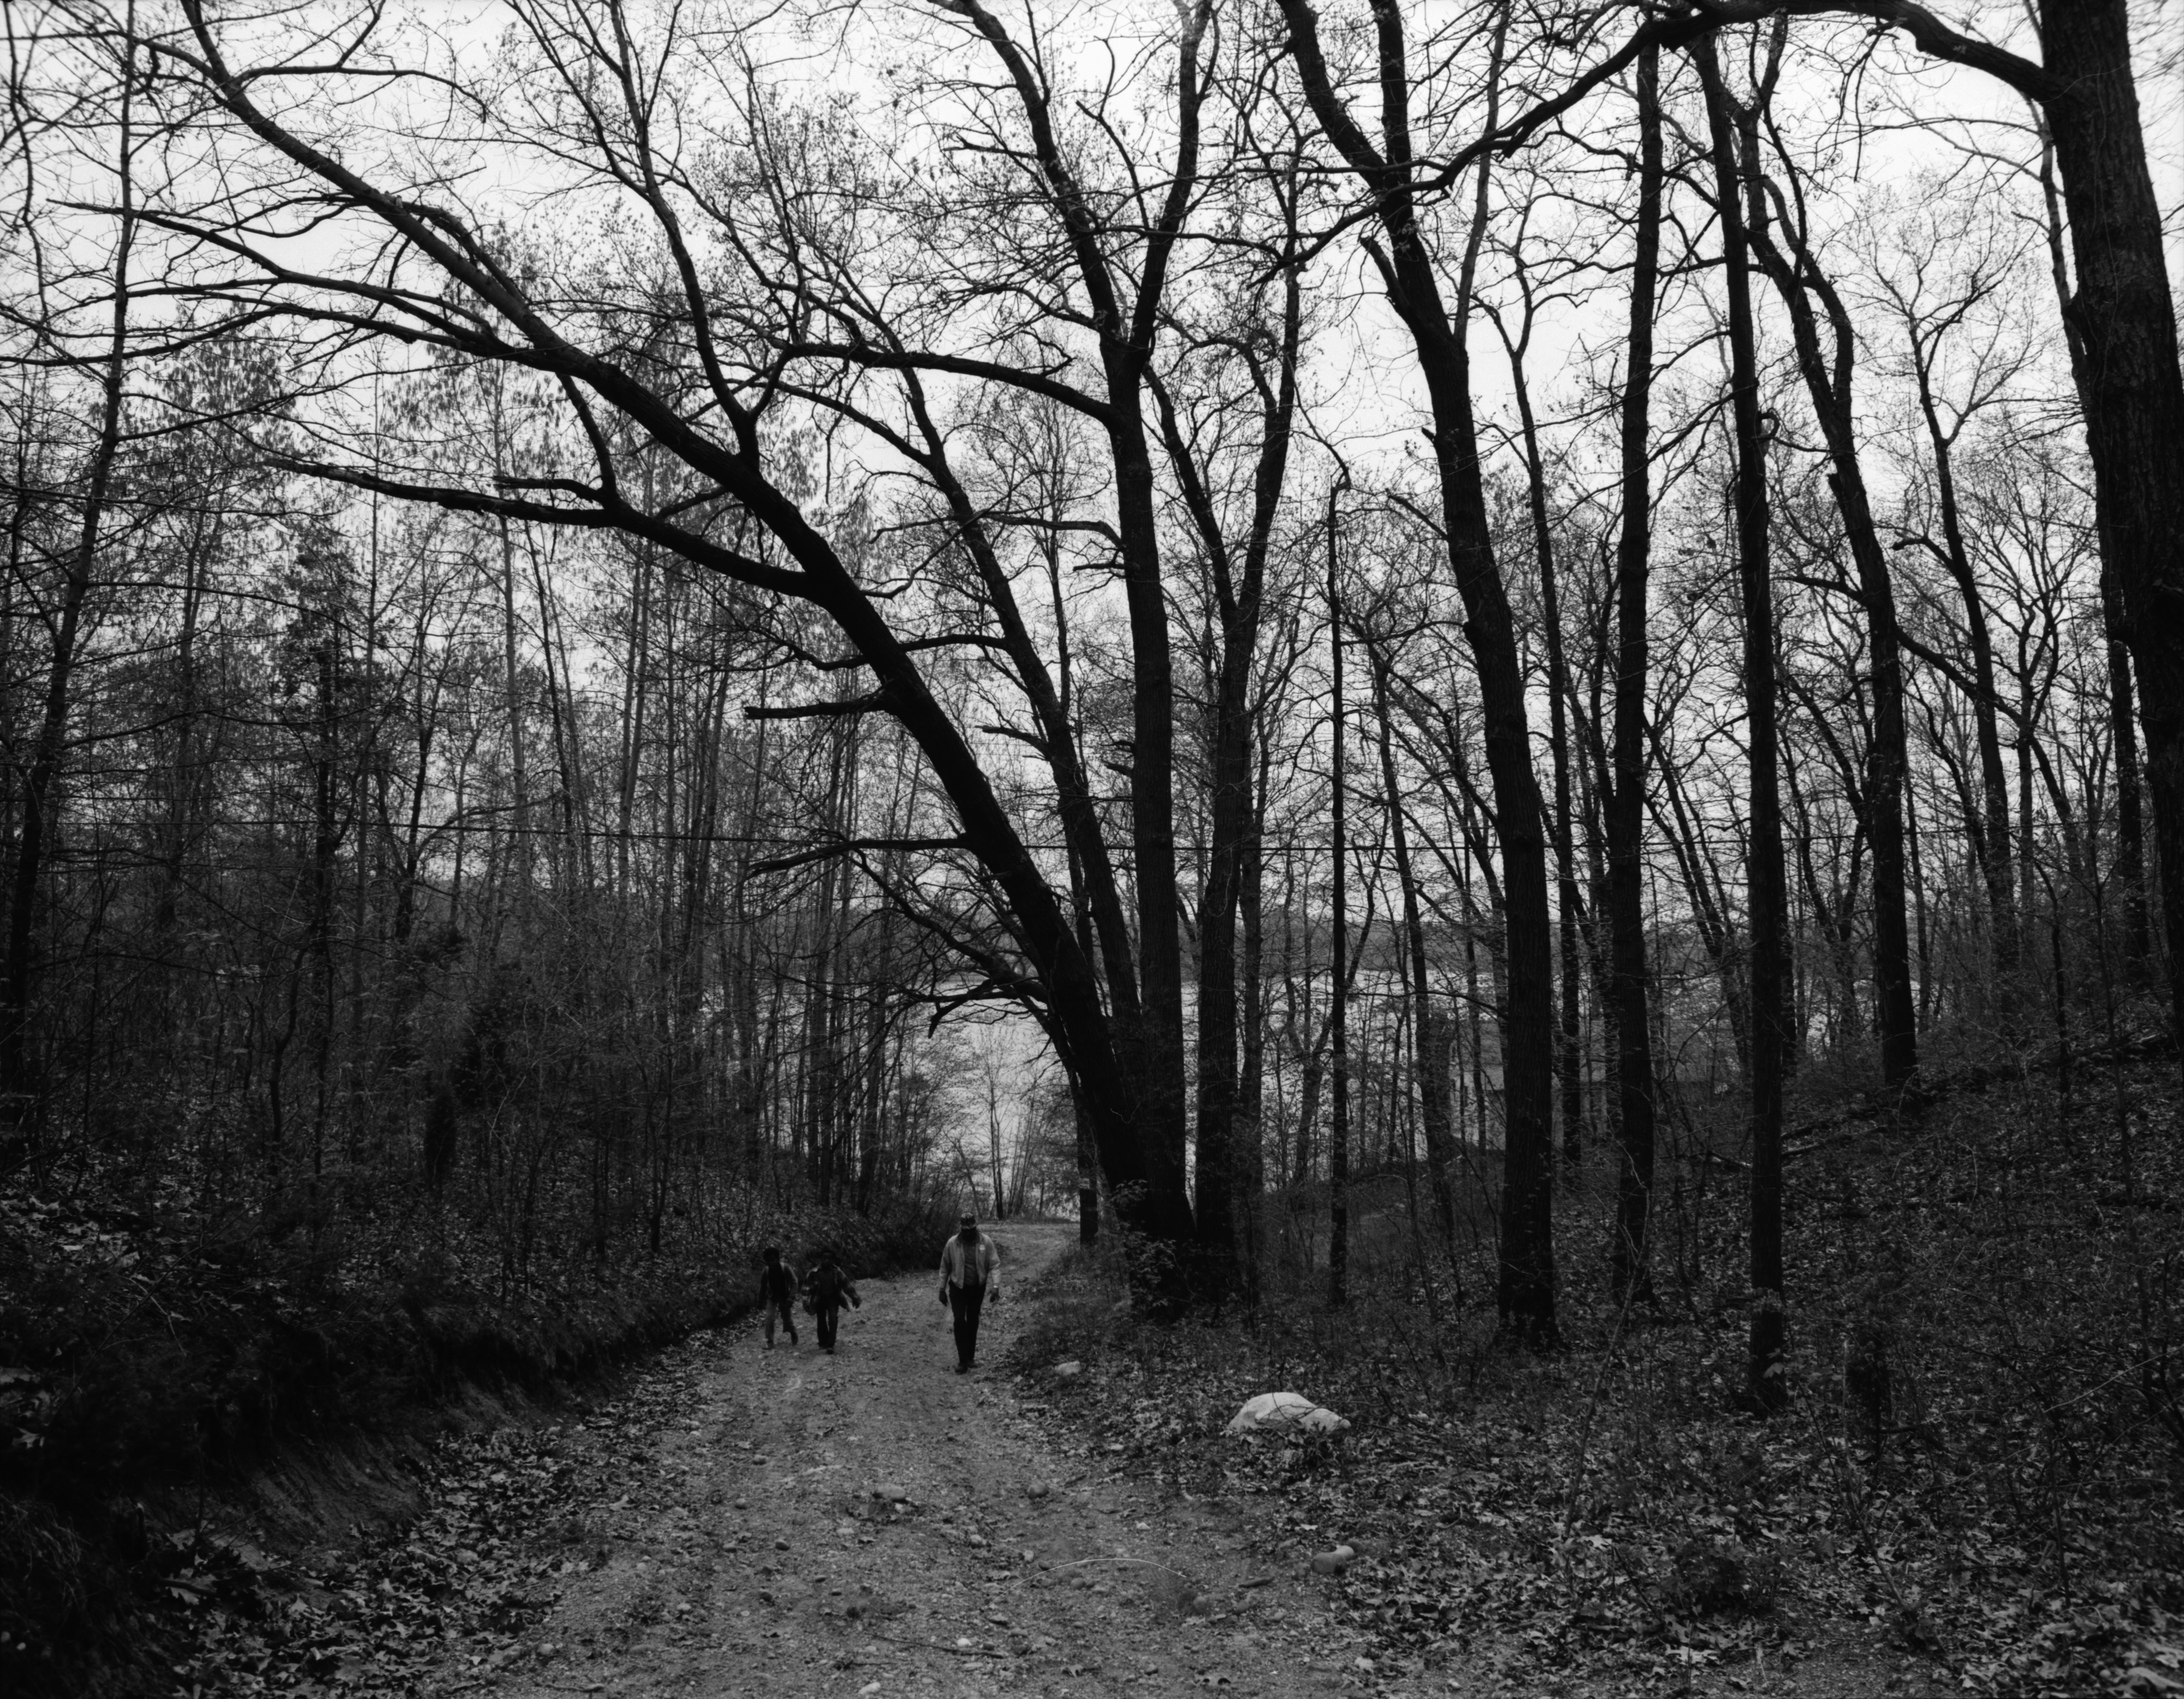 Director Walter Hill, Melvin Harris, and Jerry Yarrington Walk on a Trail at the Ann Arbor Community Center's Camp Takona, June 1972 image